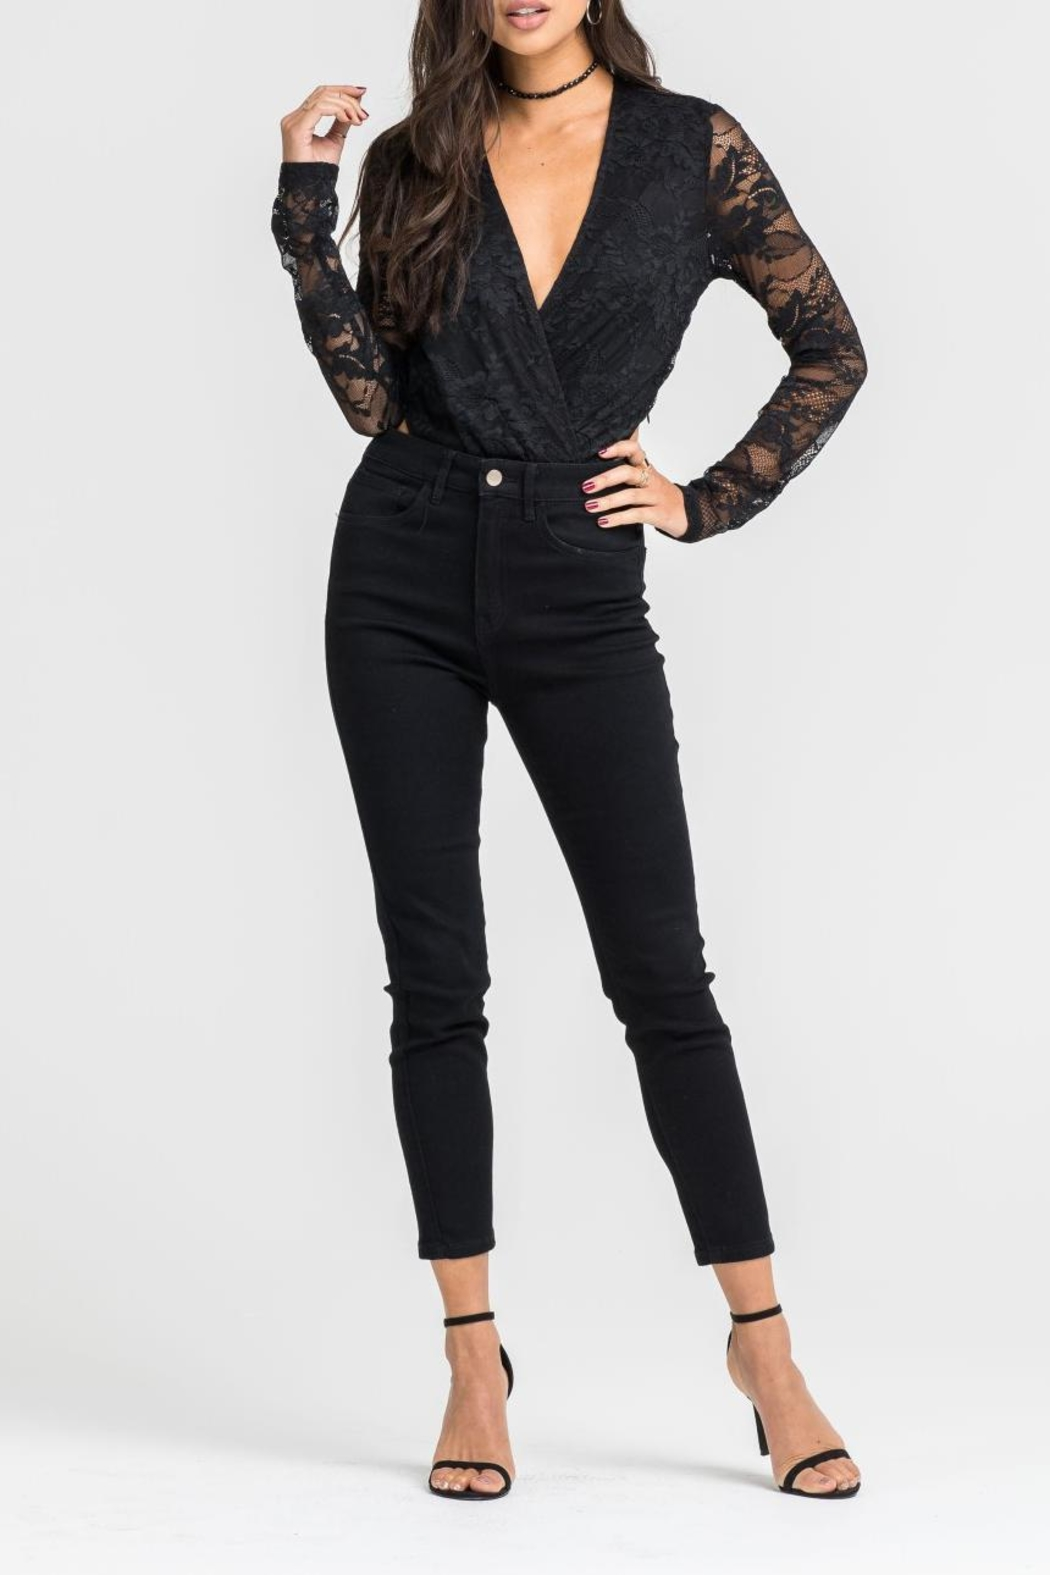 Lush Black Lace Bodysuit - Side Cropped Image